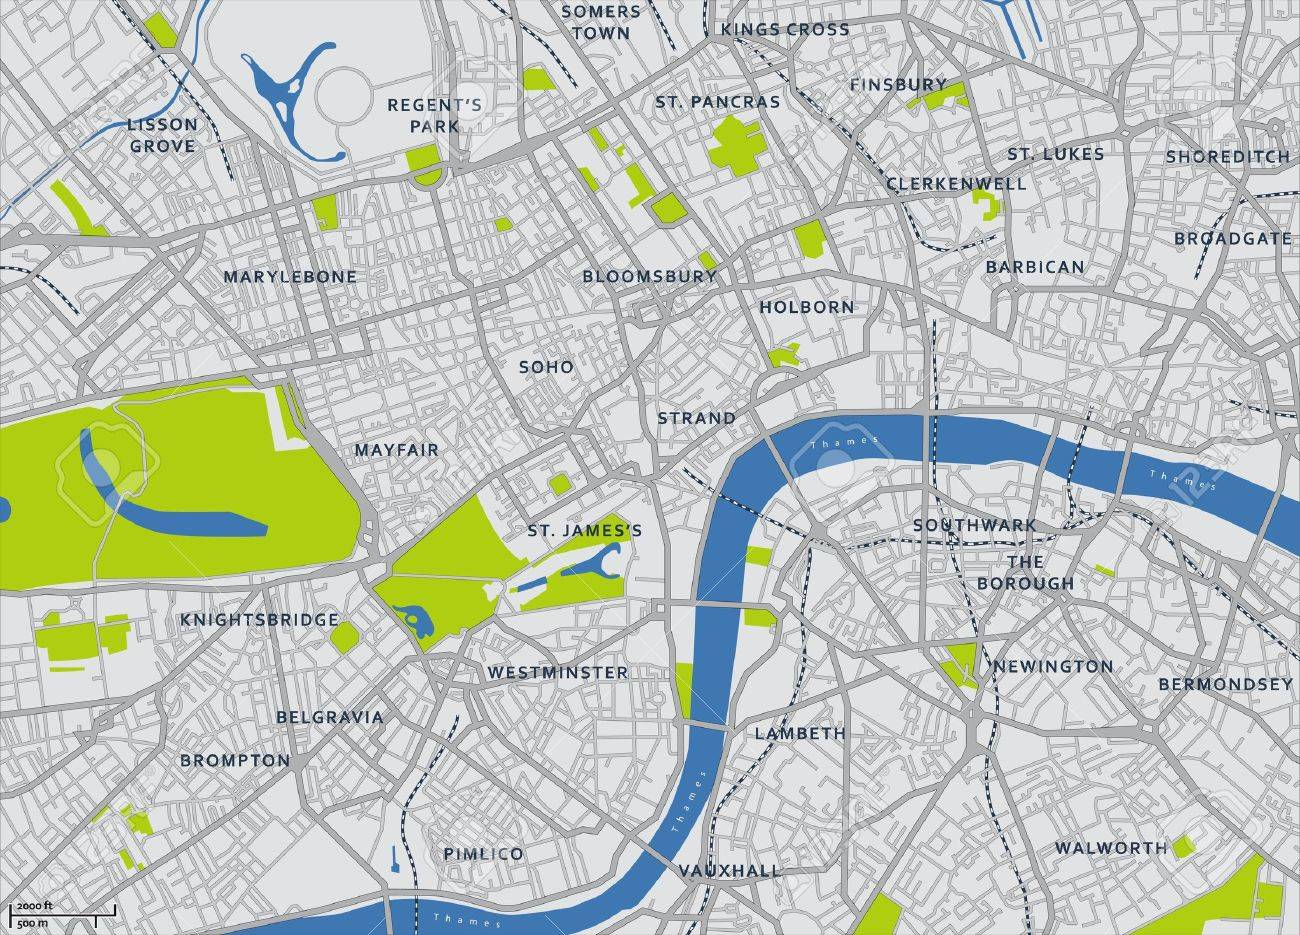 Areas Of Central London Map.Central London Vector Map